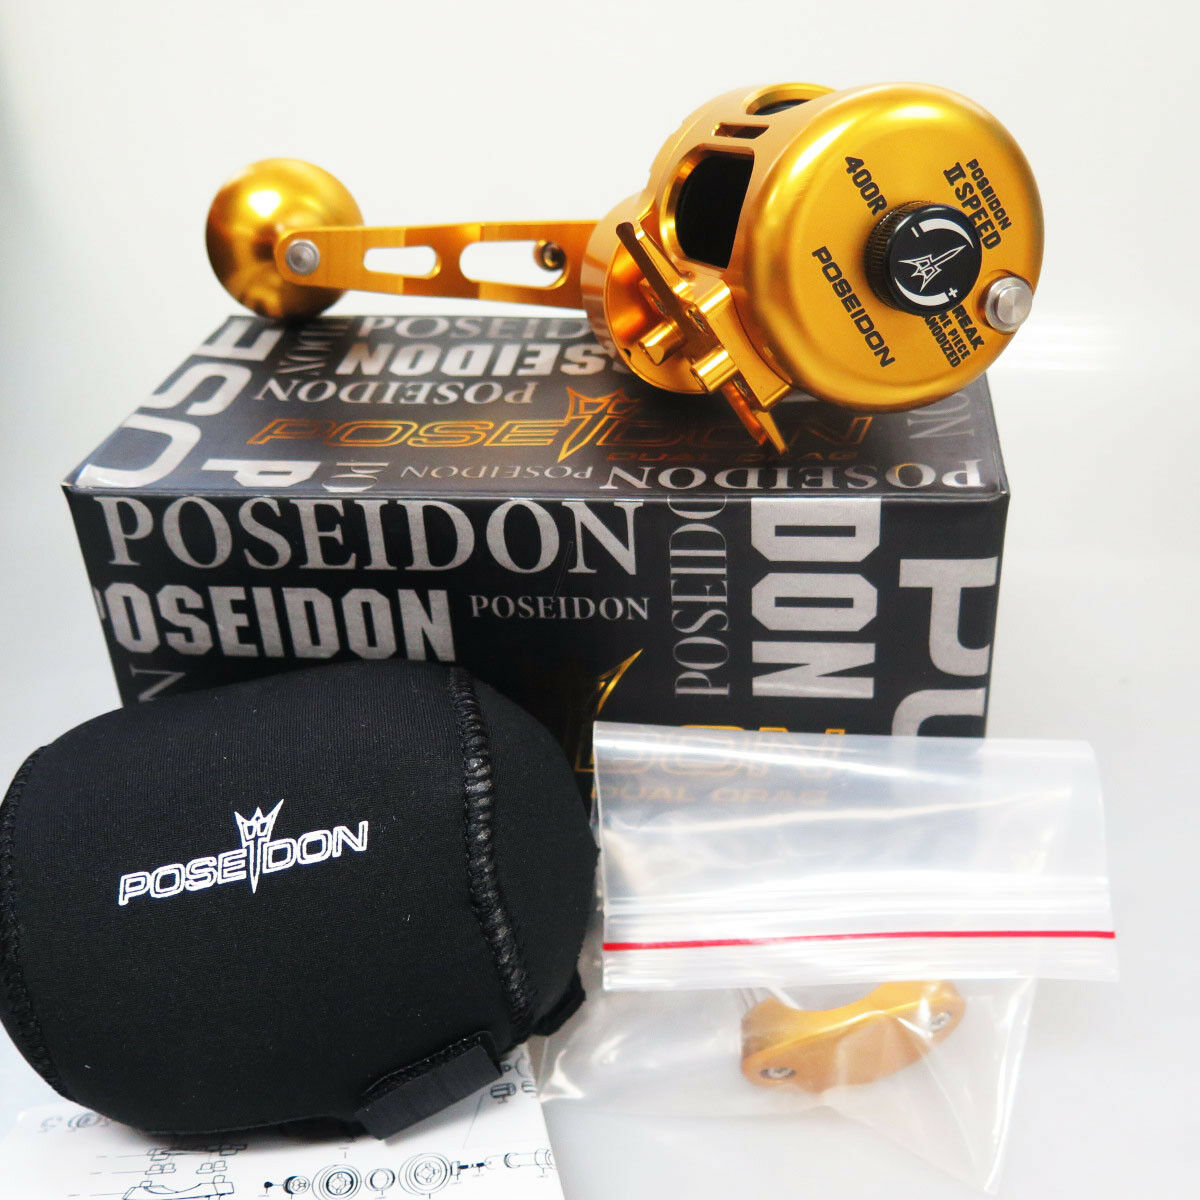 POSEIDON 400R 2 Speed Reel RIGHT SALTWATER GD Blk HEAVY DUTY 2DAYS FEDEX TO US